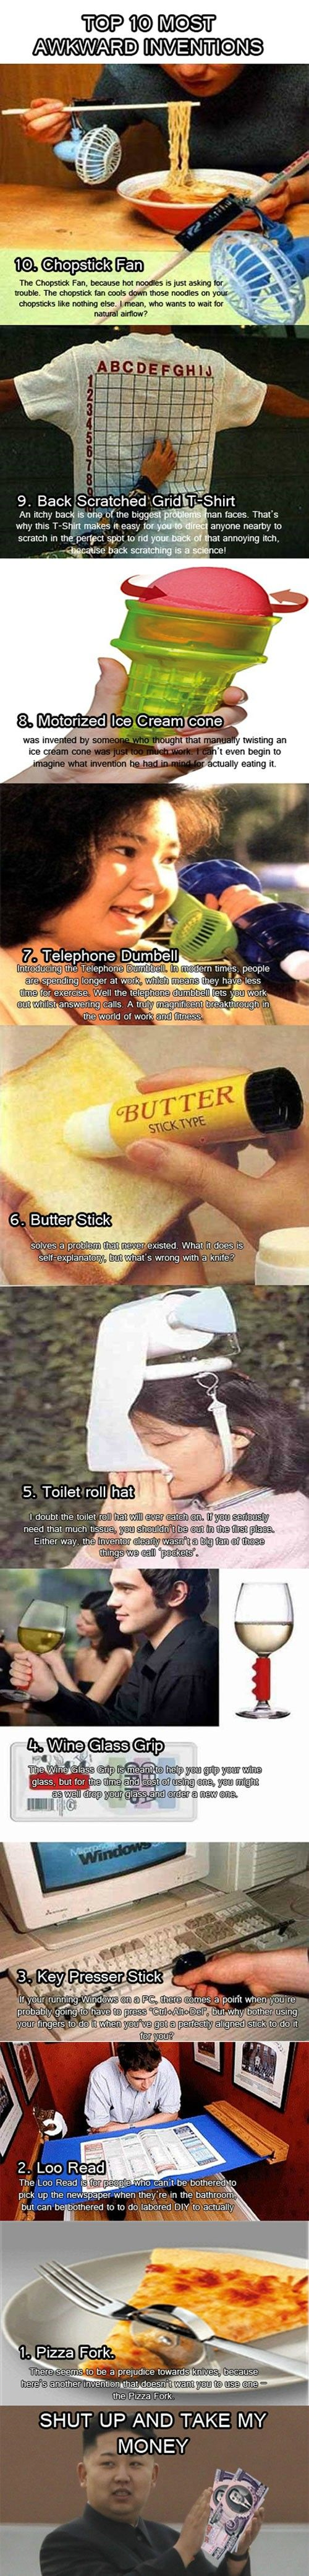 000 Top 10 most awkward inventions. I kind of want the toilet